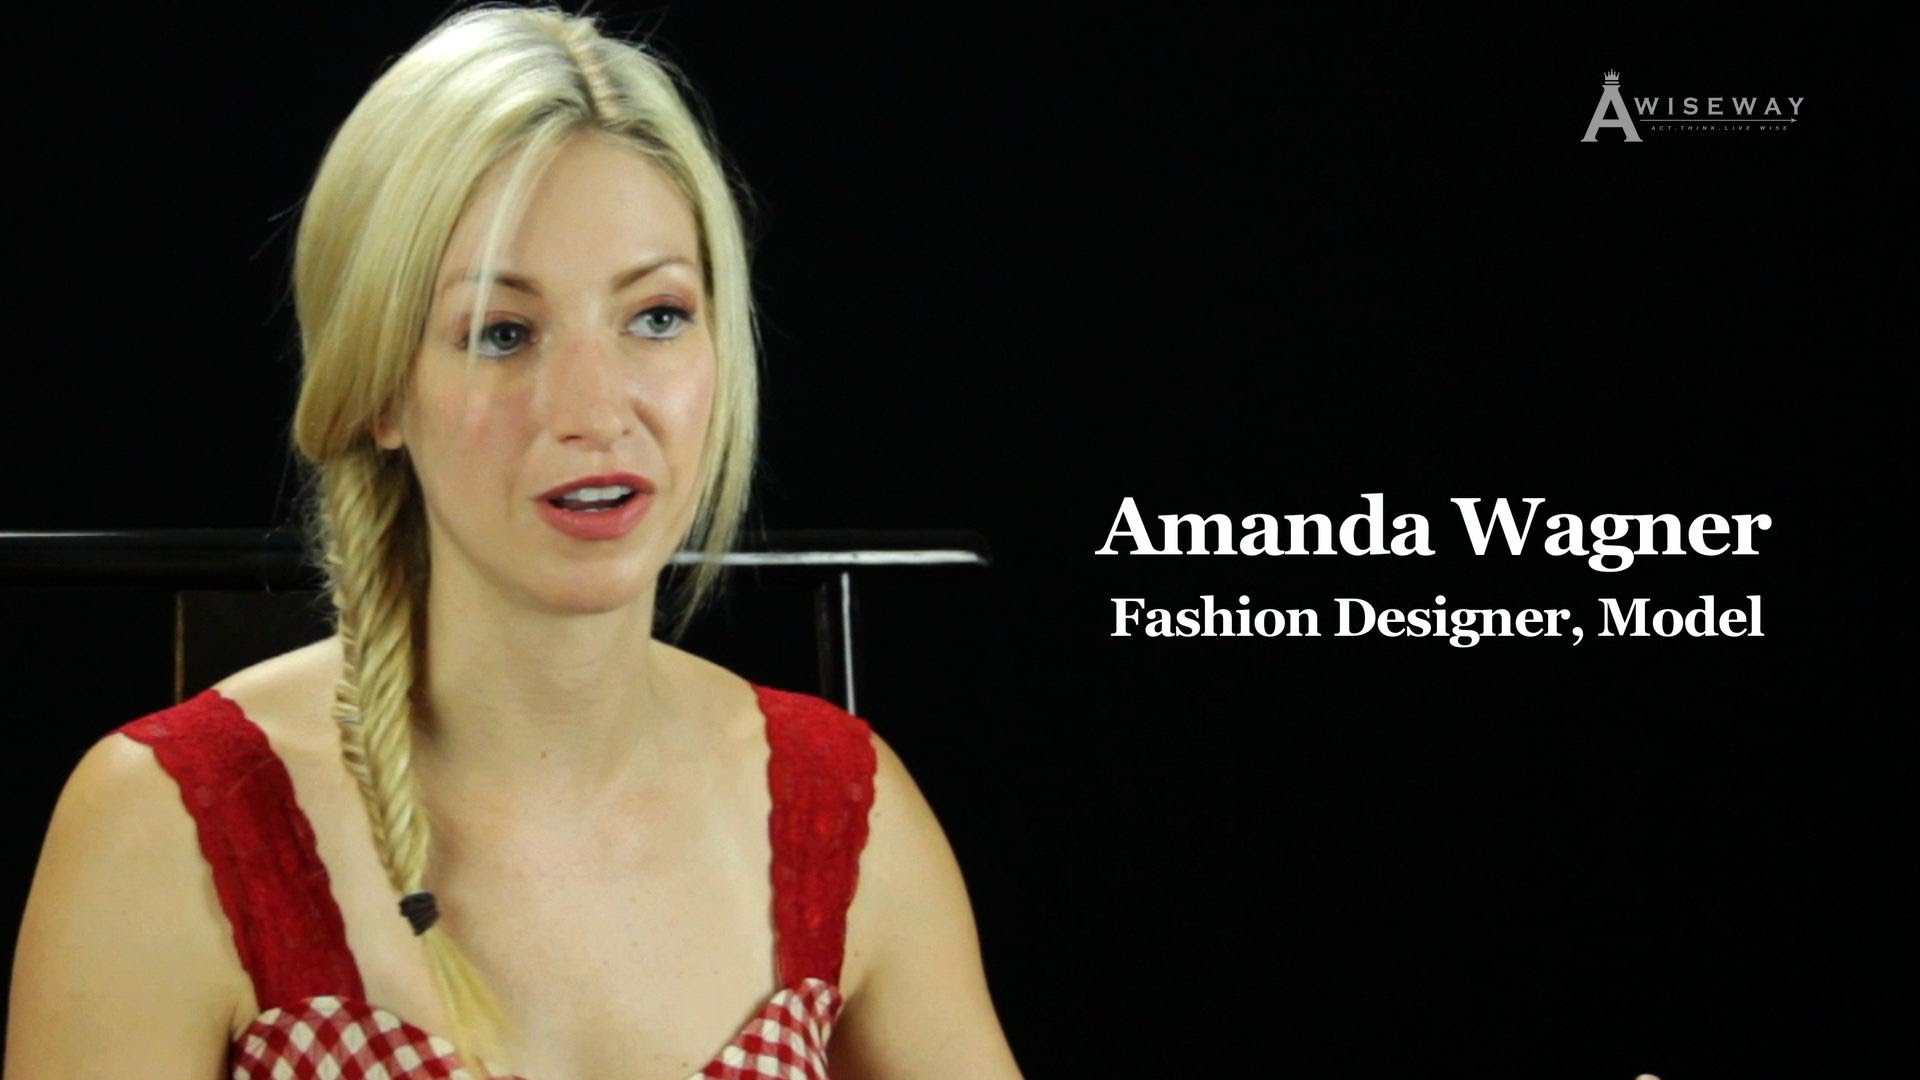 Fashion Designer and Model Provides Insight on Life After High School